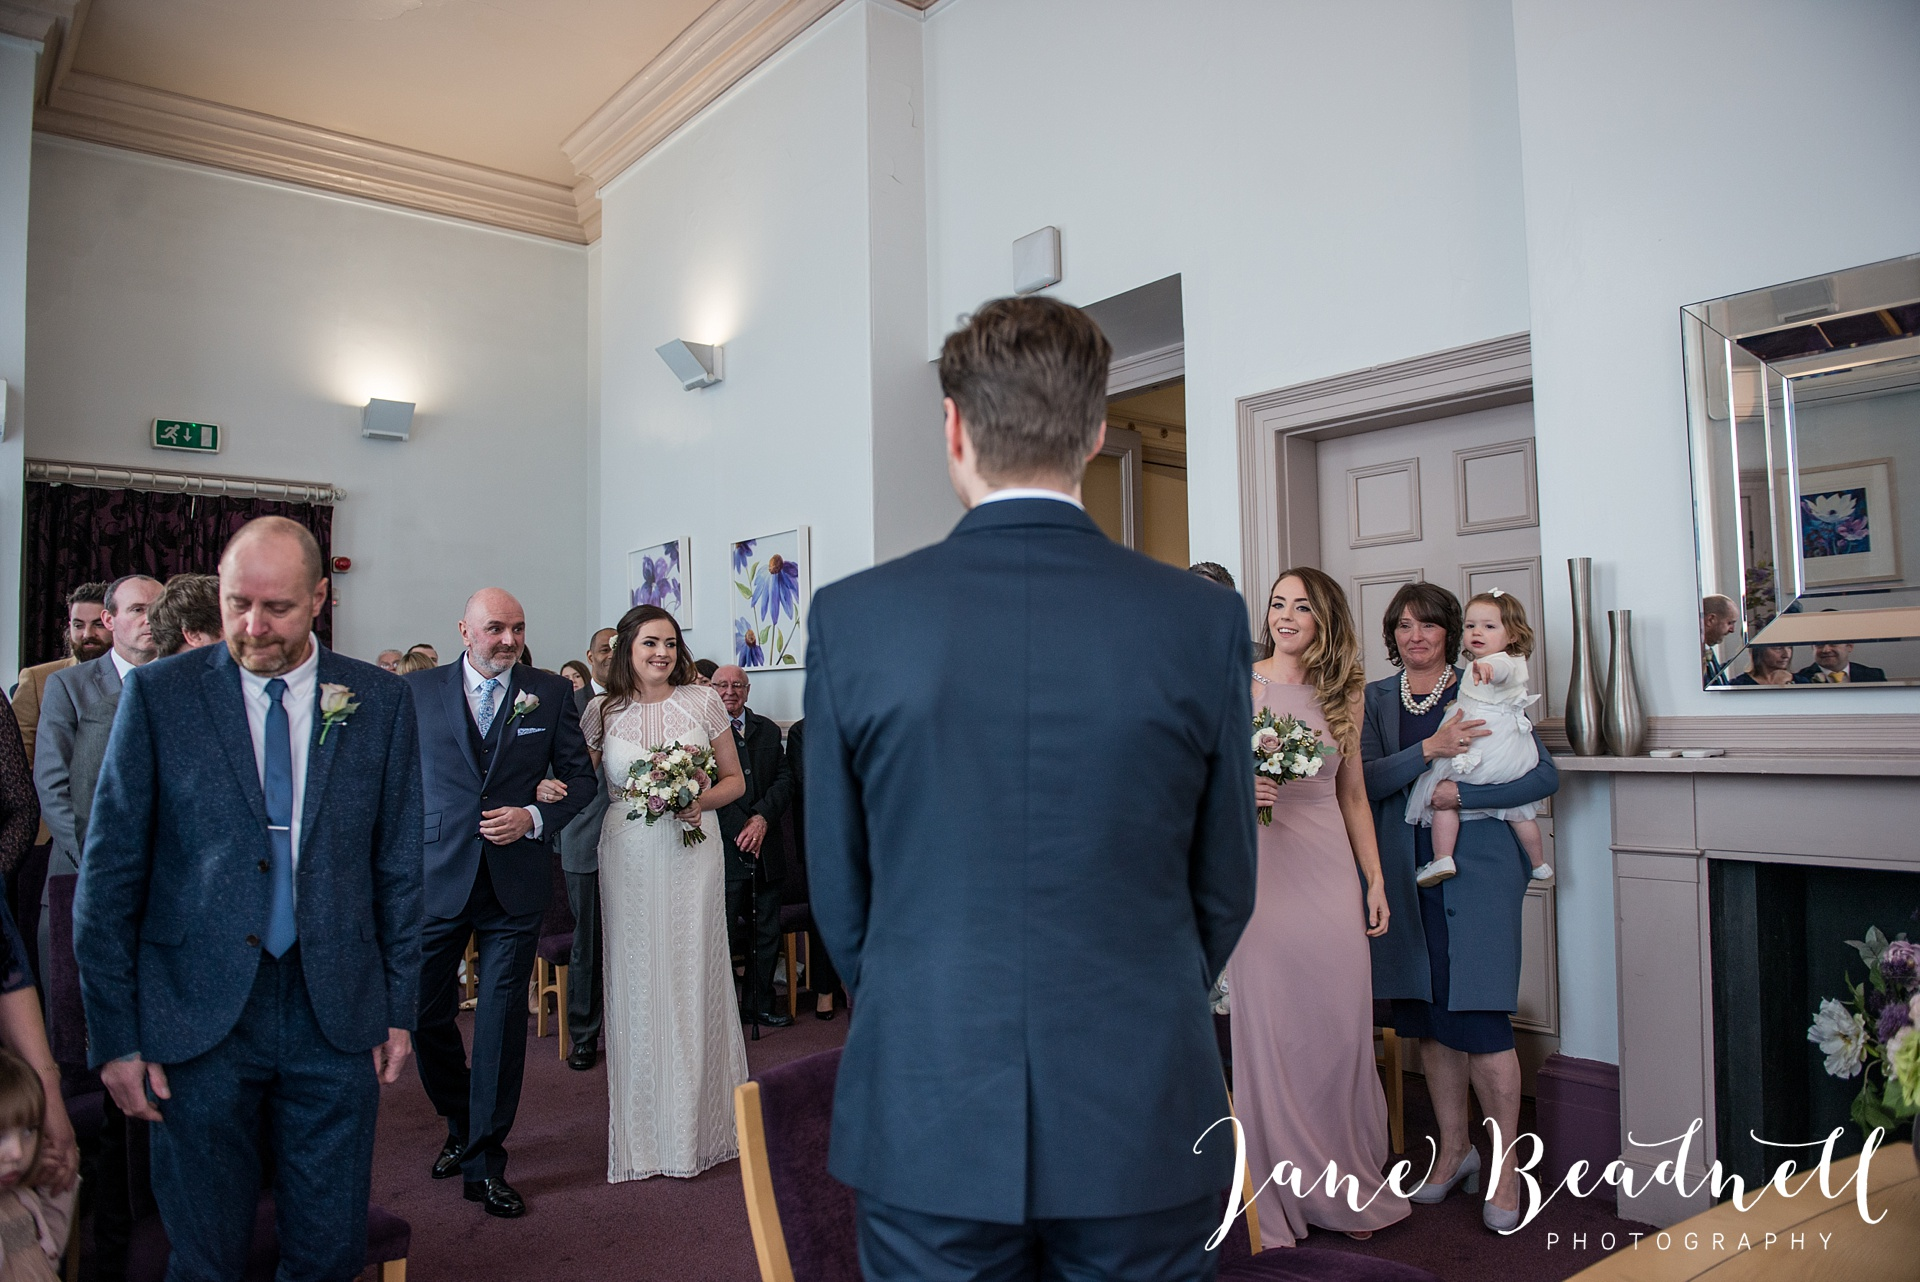 Wedding photography Cross Keys Leeds Wedding Jane Beadnell Photography_0026